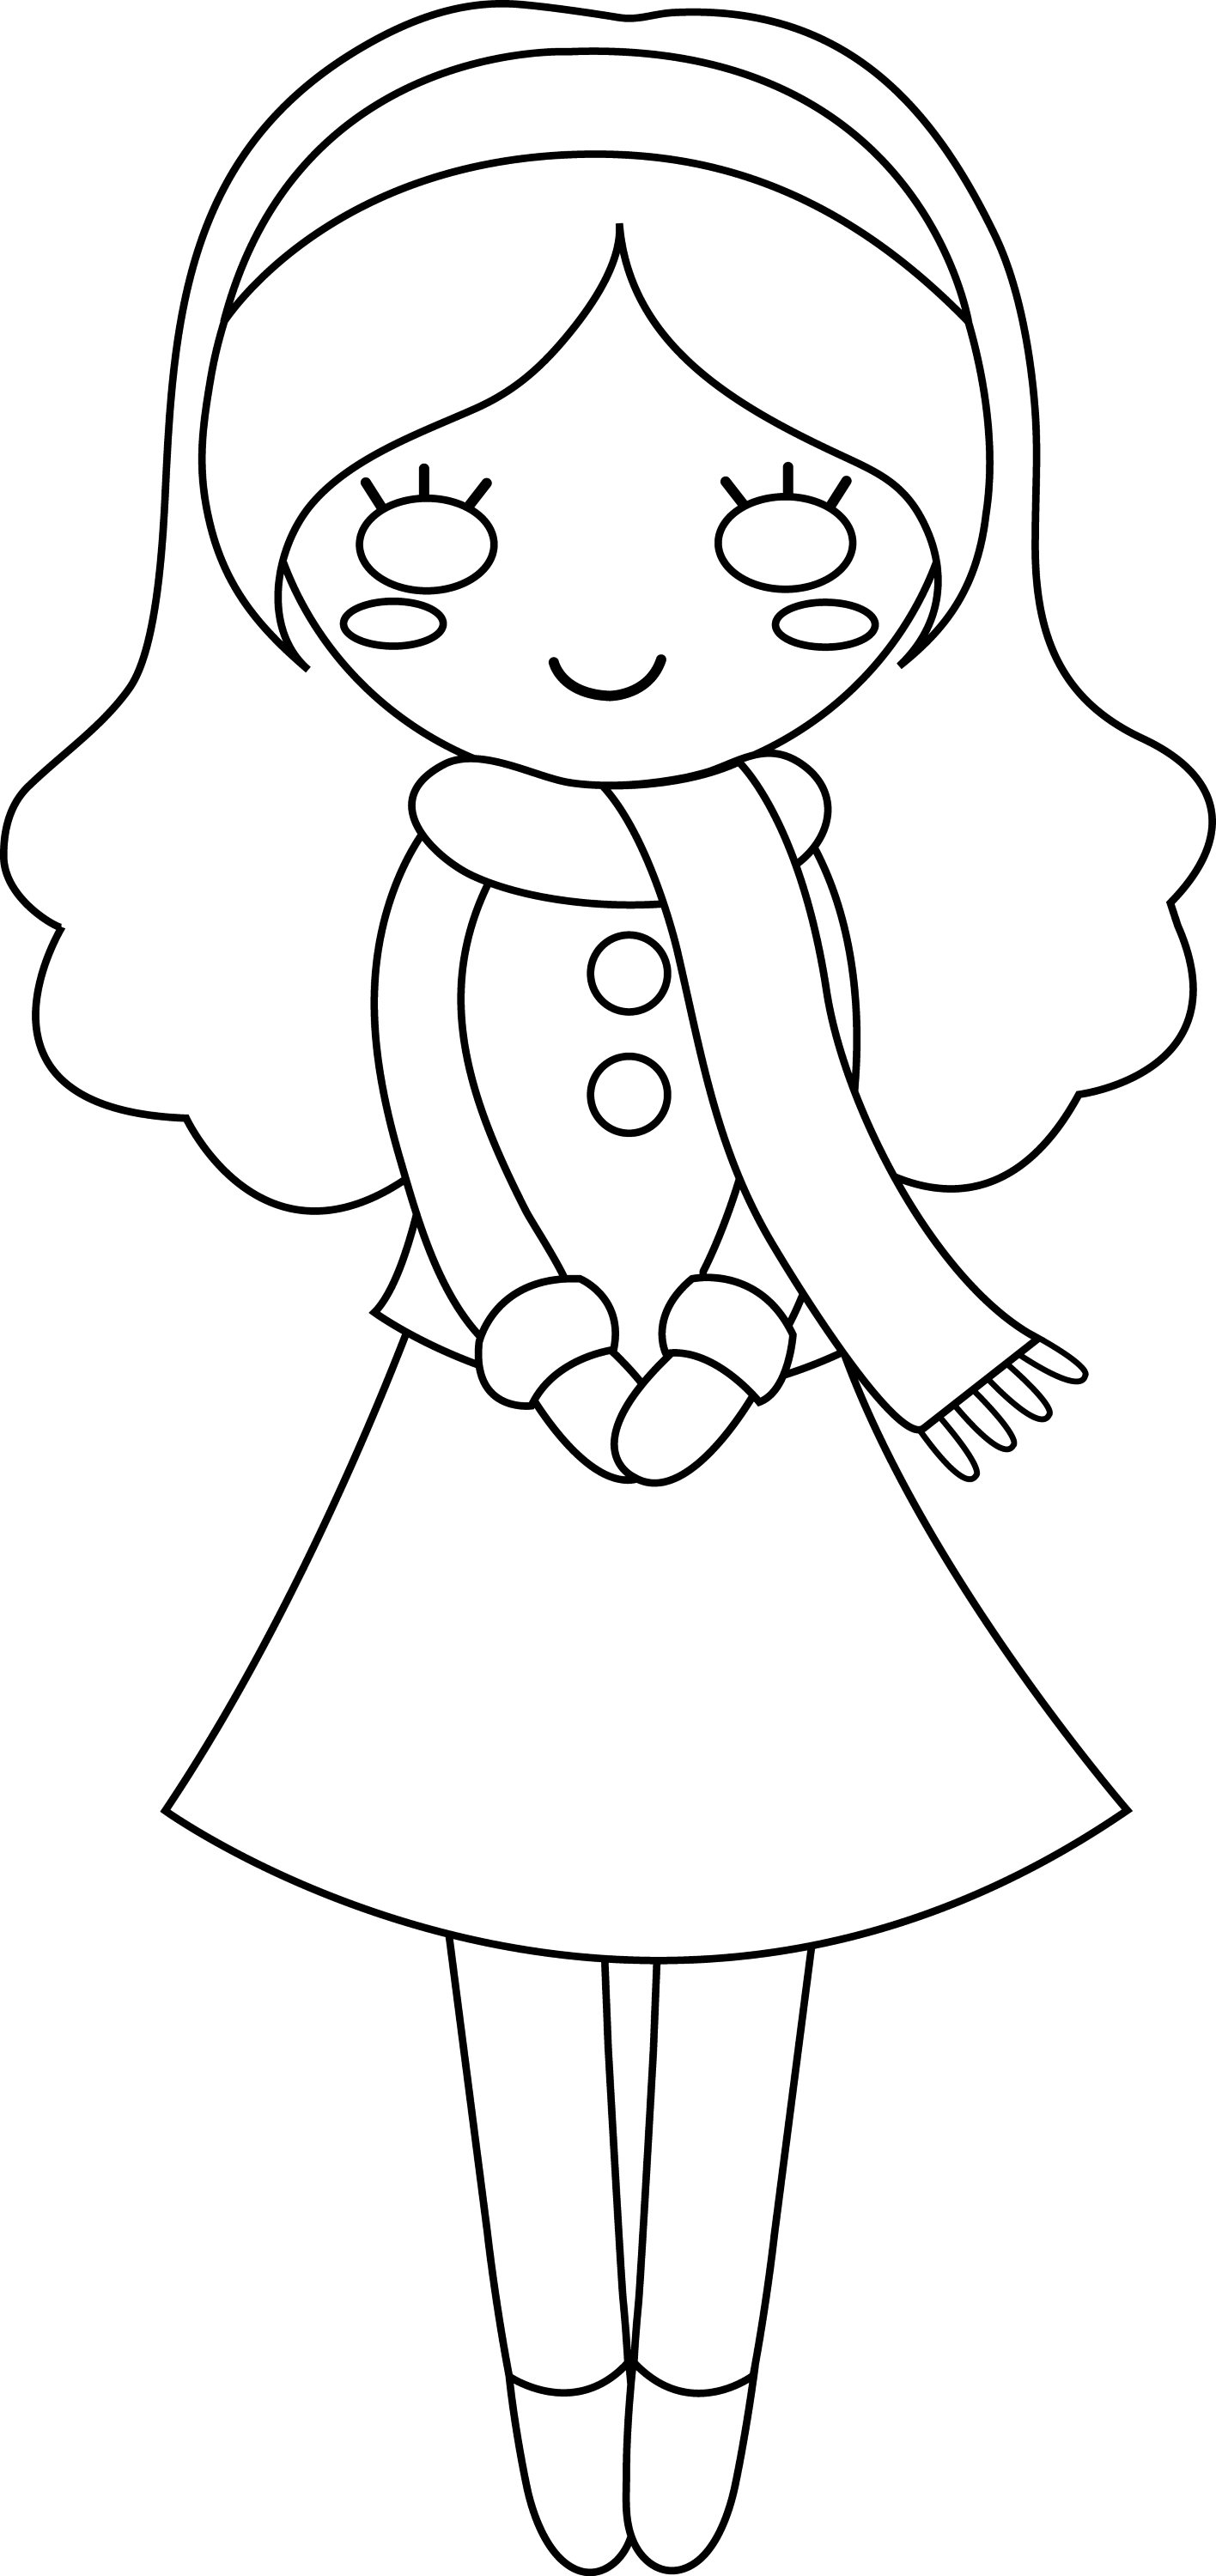 little girl coloring pictures little girl characters printable coloring pages pictures girl little coloring